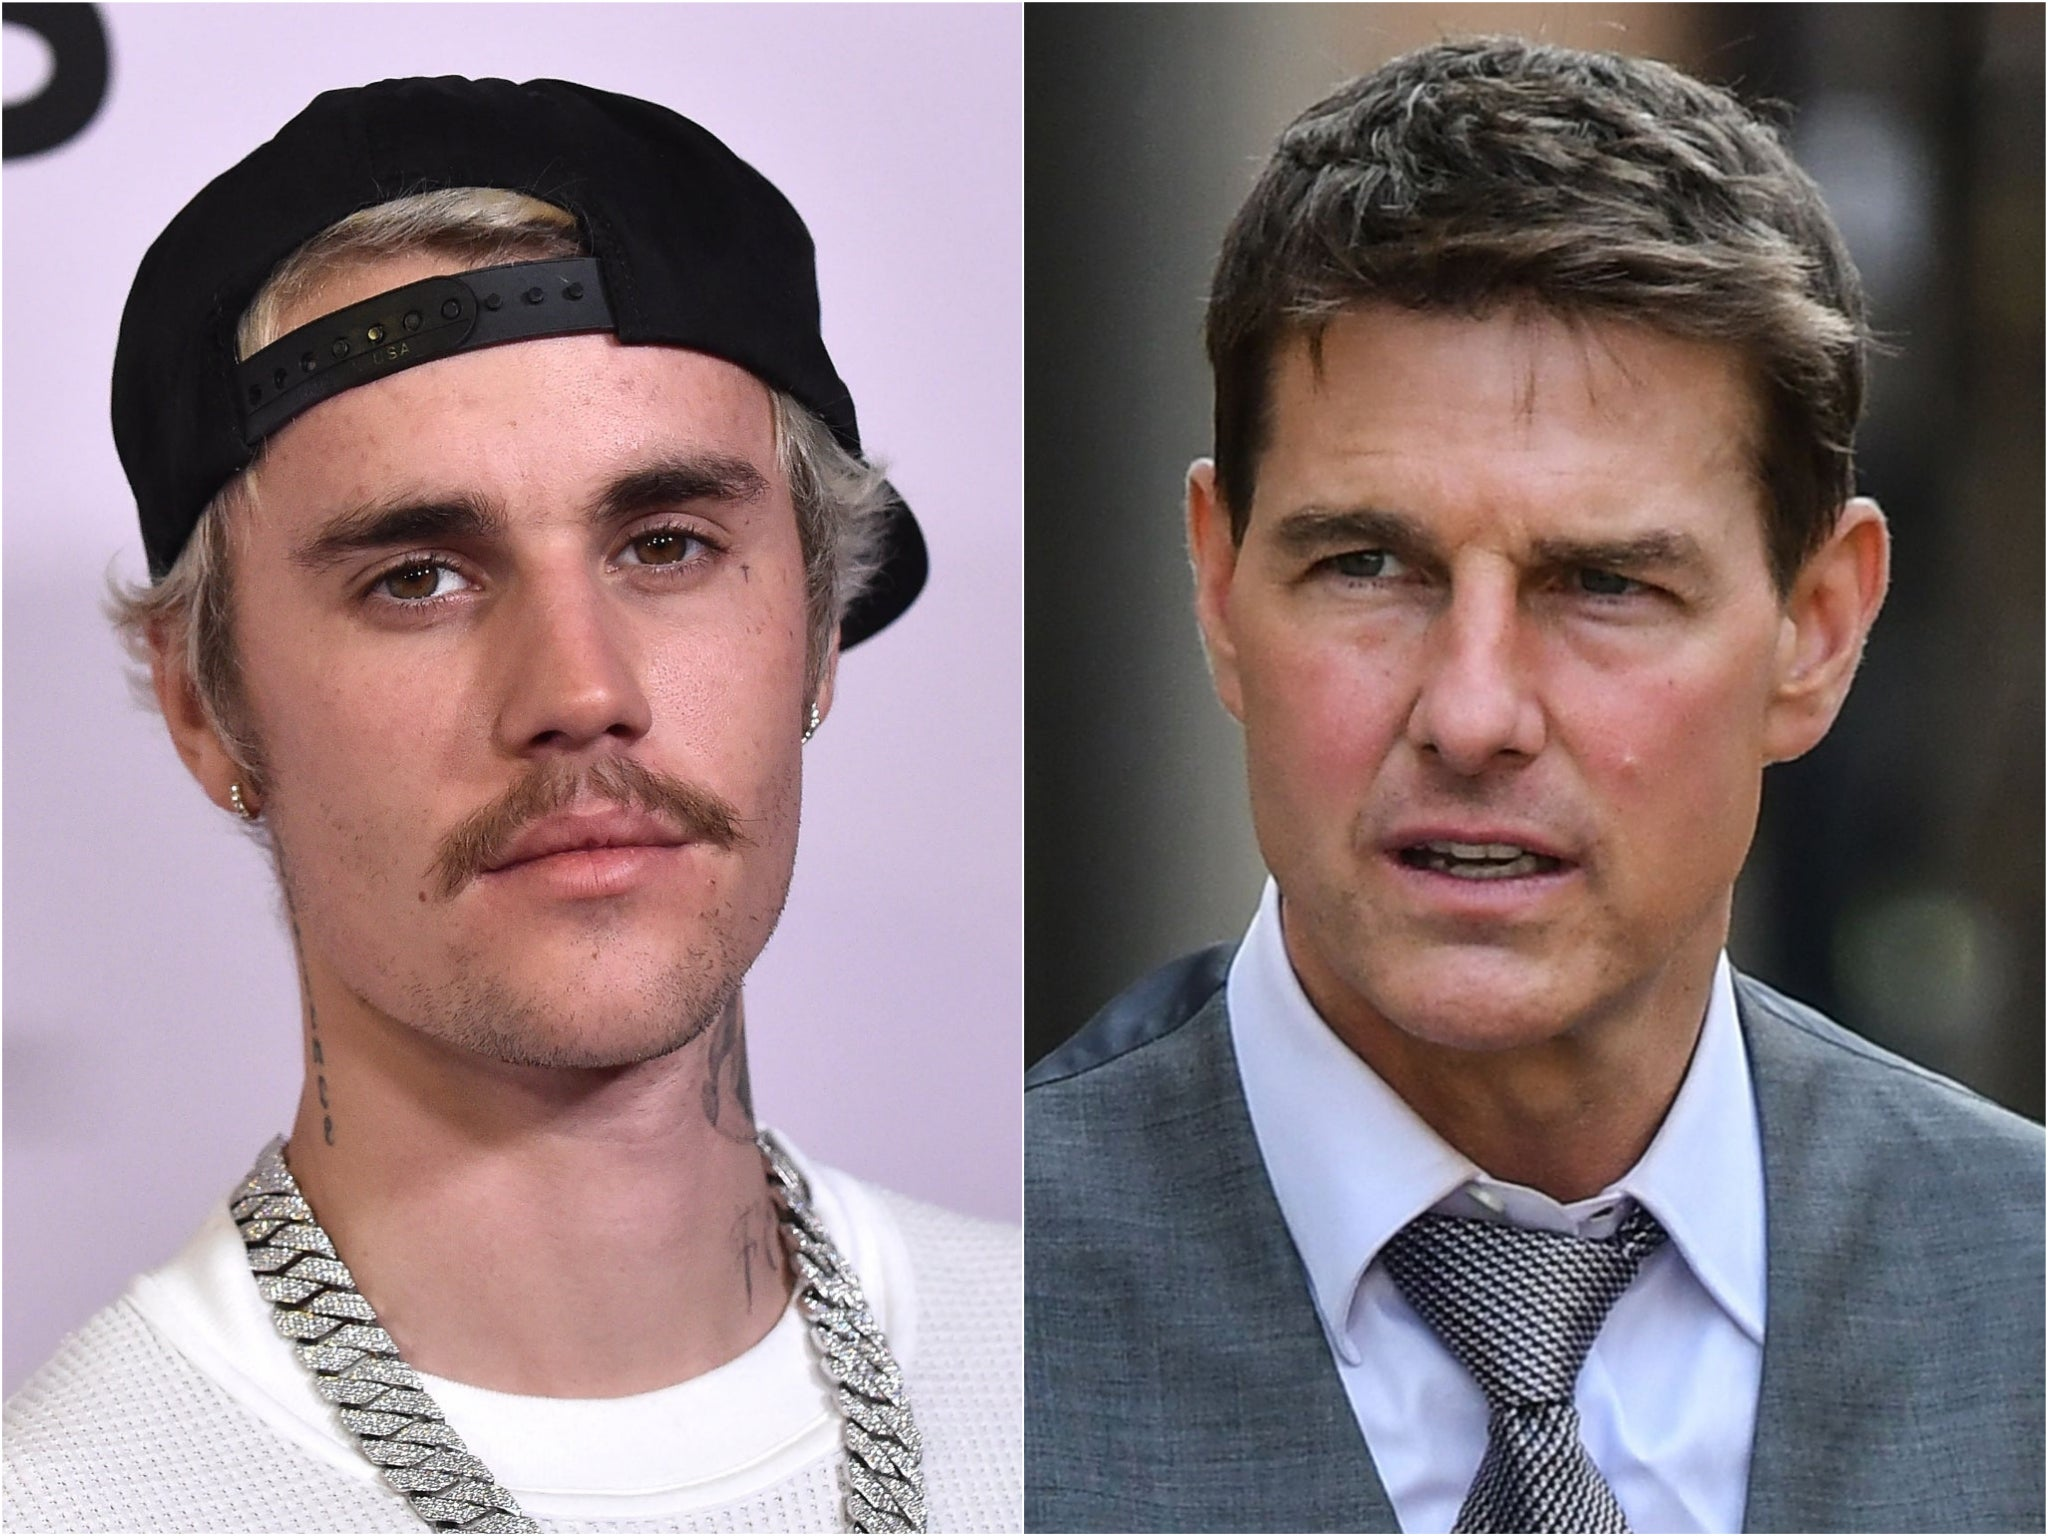 Justin Bieber says Tom Cruise is 'toast' as he renews offer to fight actor